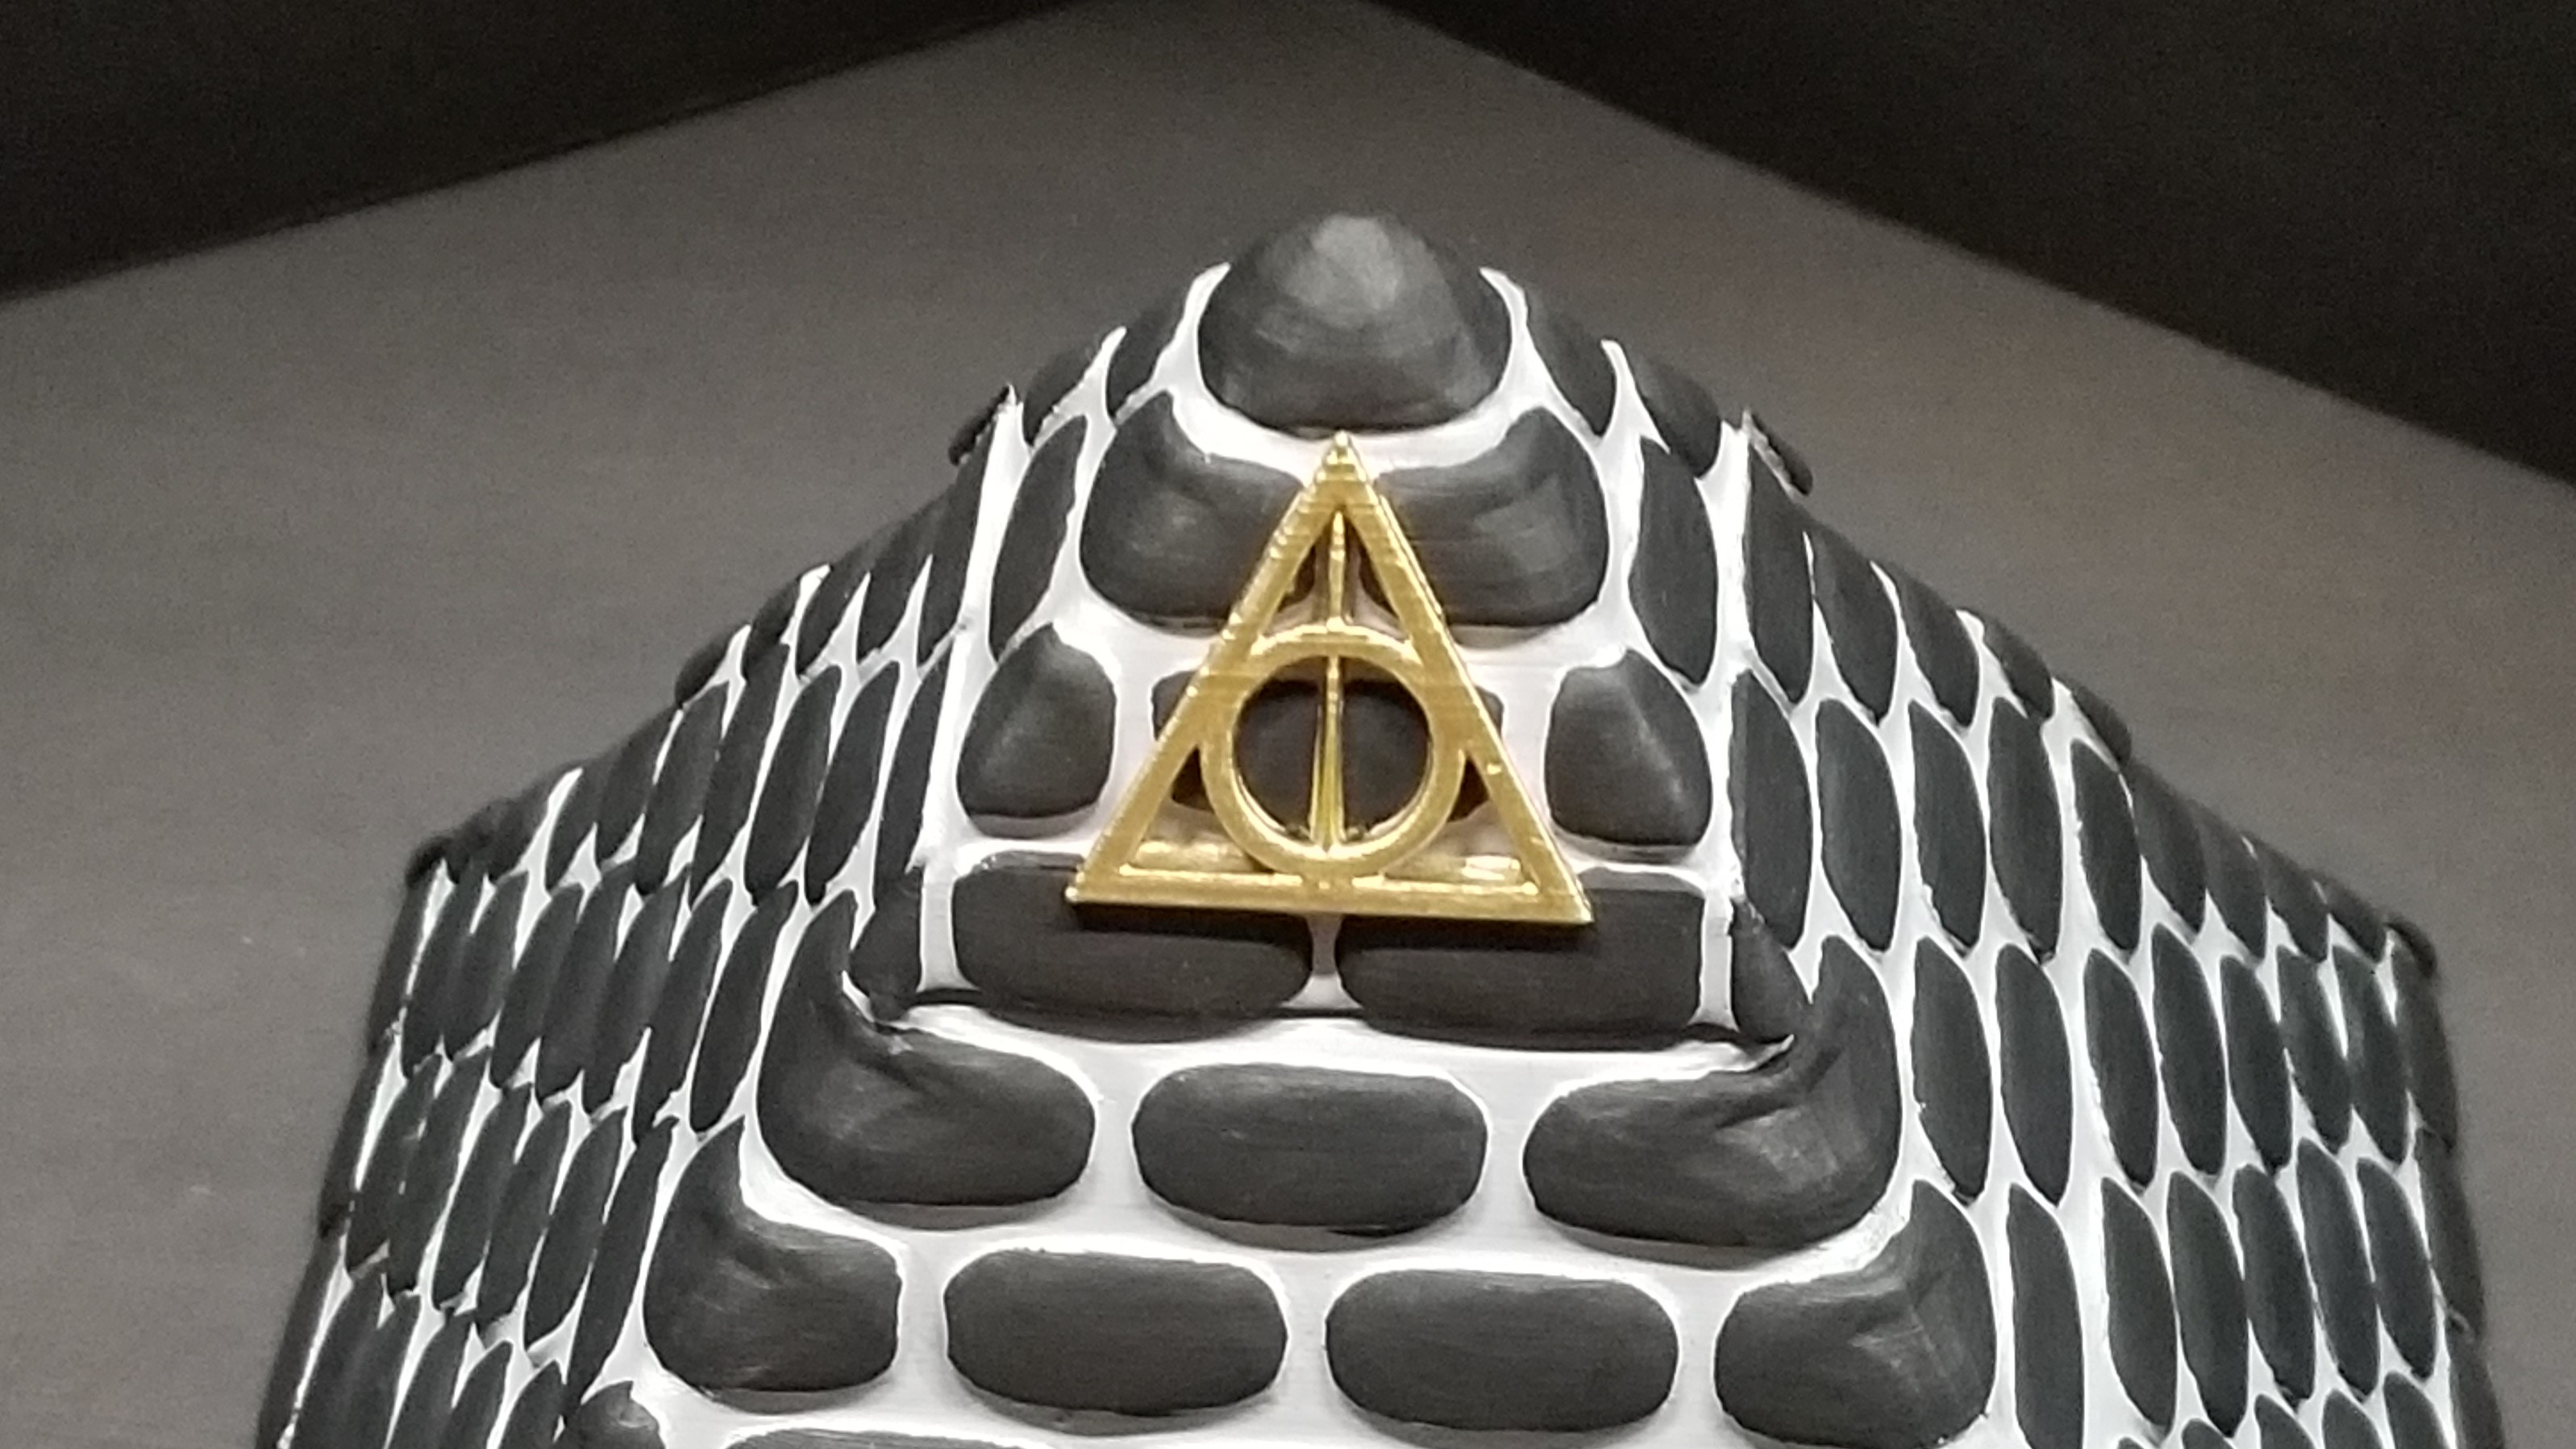 20190529_031534.jpg Download free STL file POTTER PYRAMID BOX with a Chamber of secrets • Template to 3D print, LittleTup